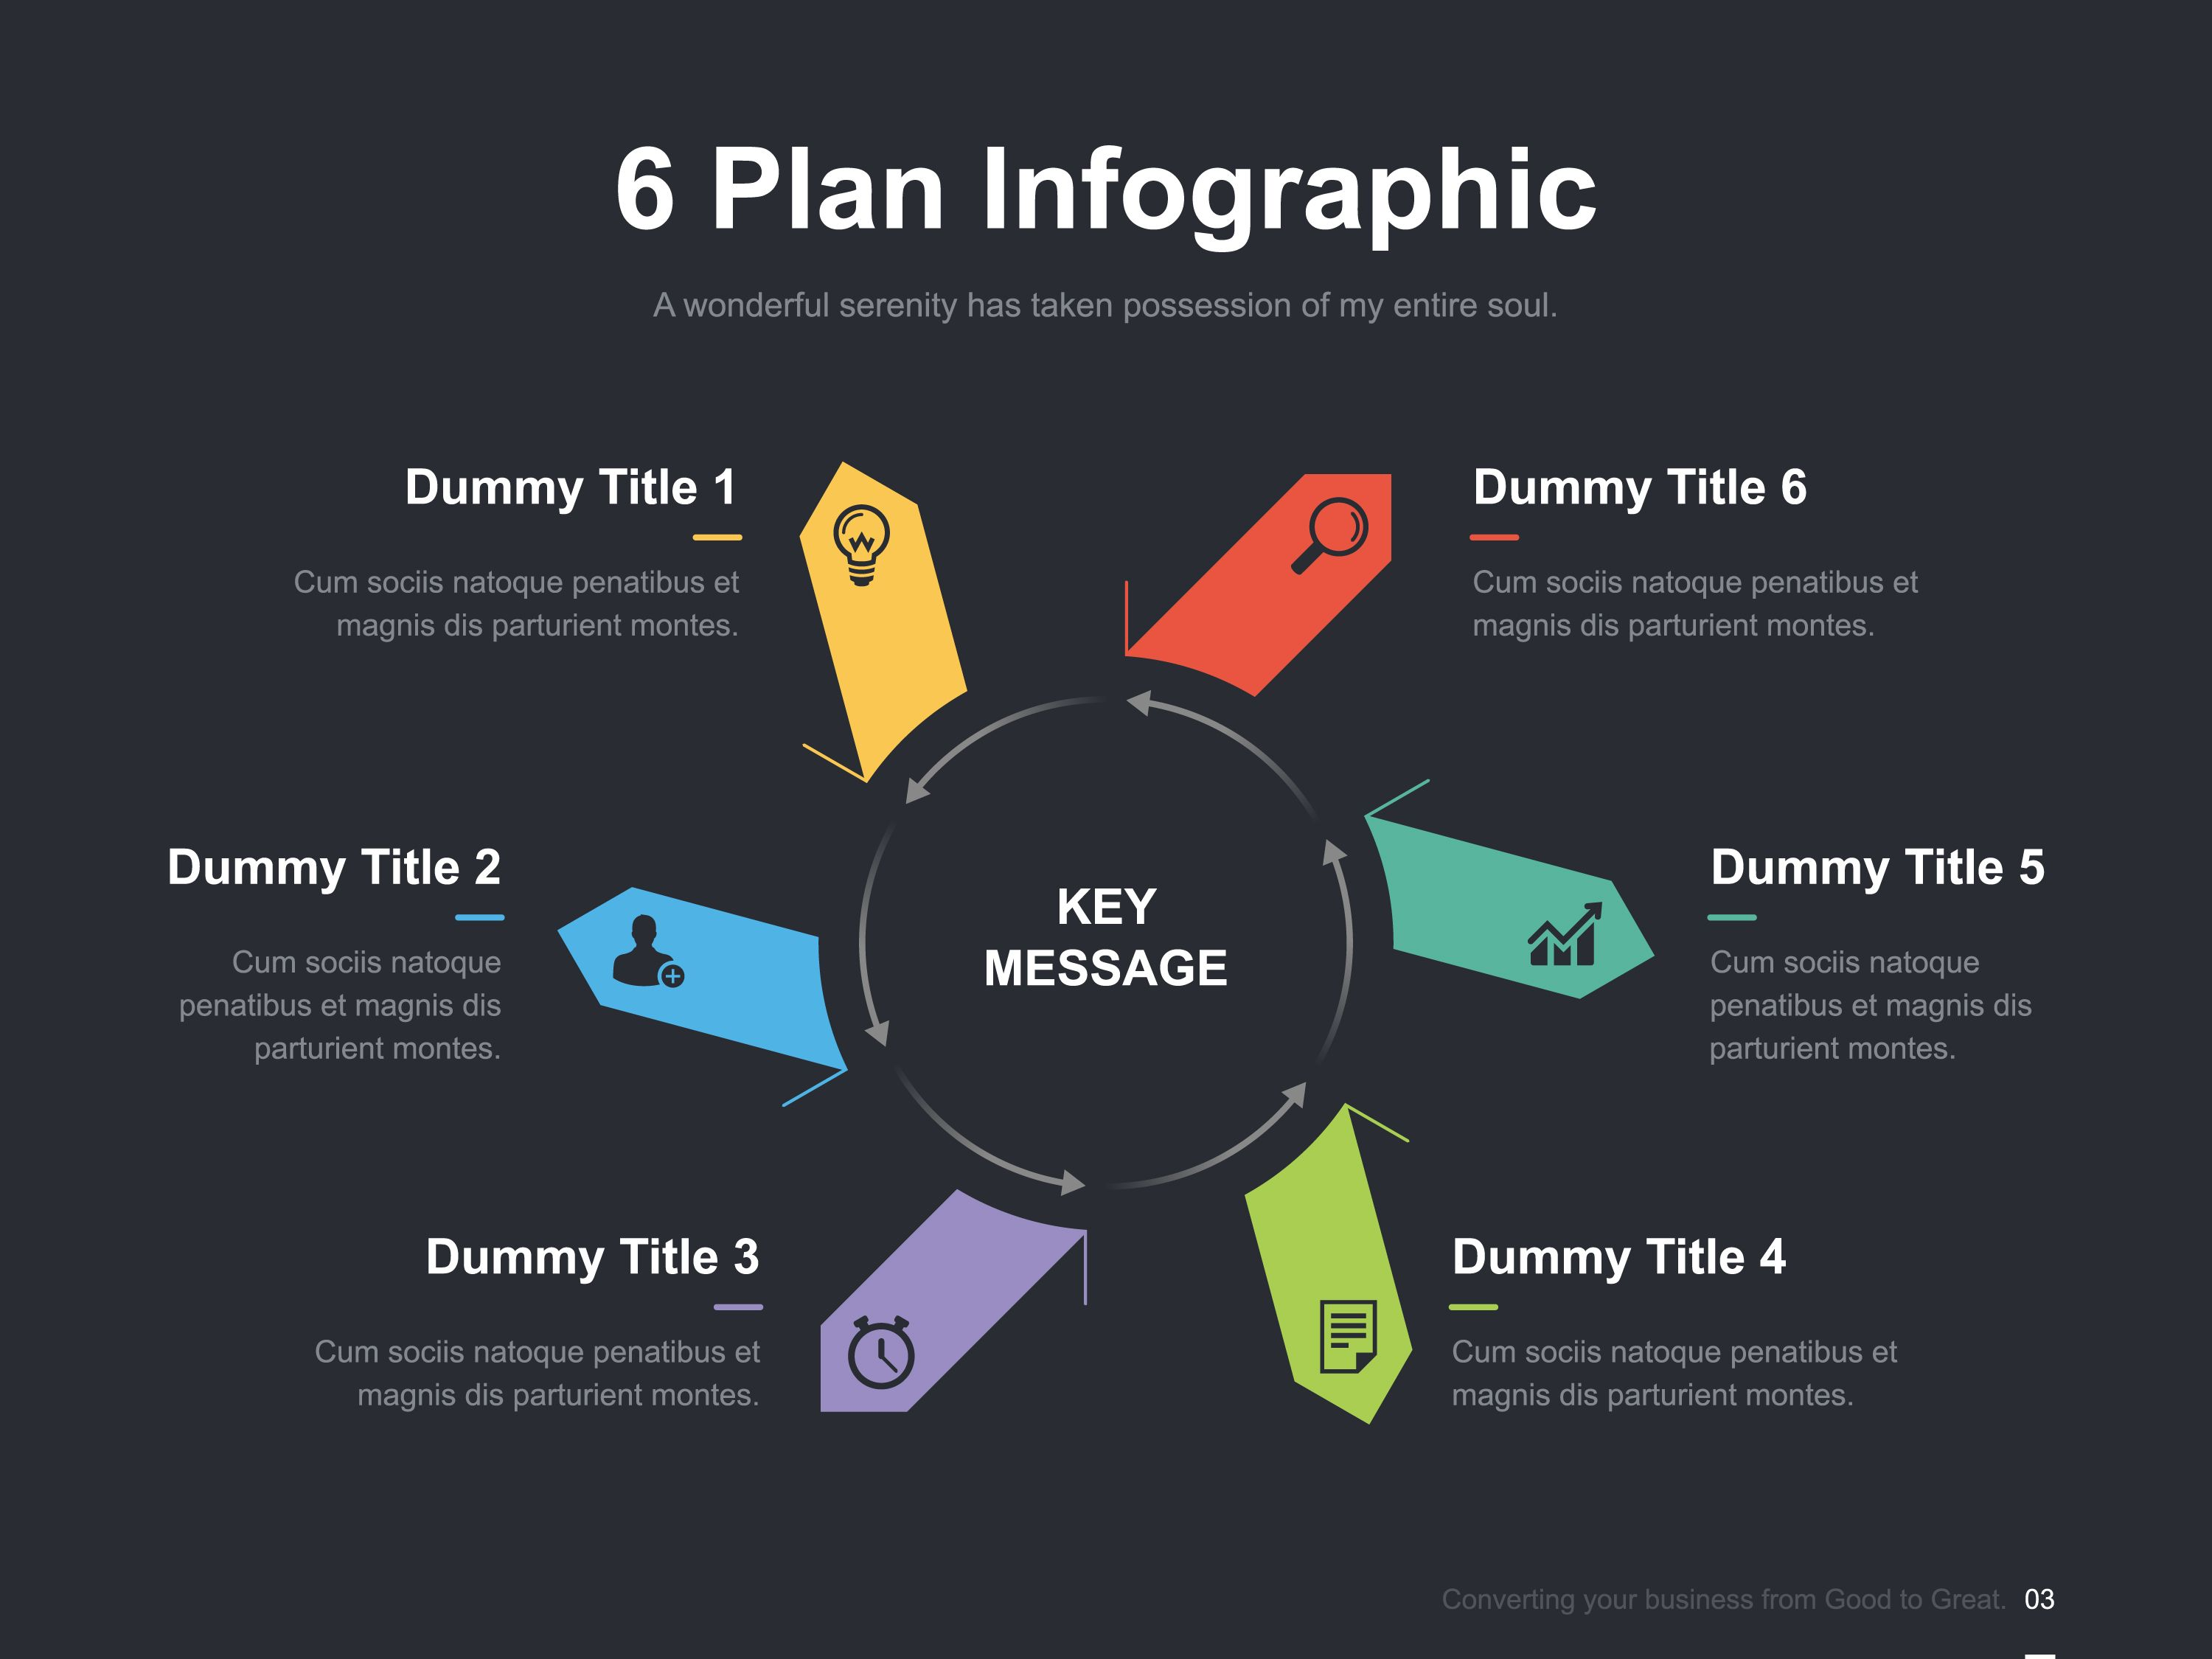 6 Plan Infographic>>>> #Graphic #Business, #Presentation, #Template